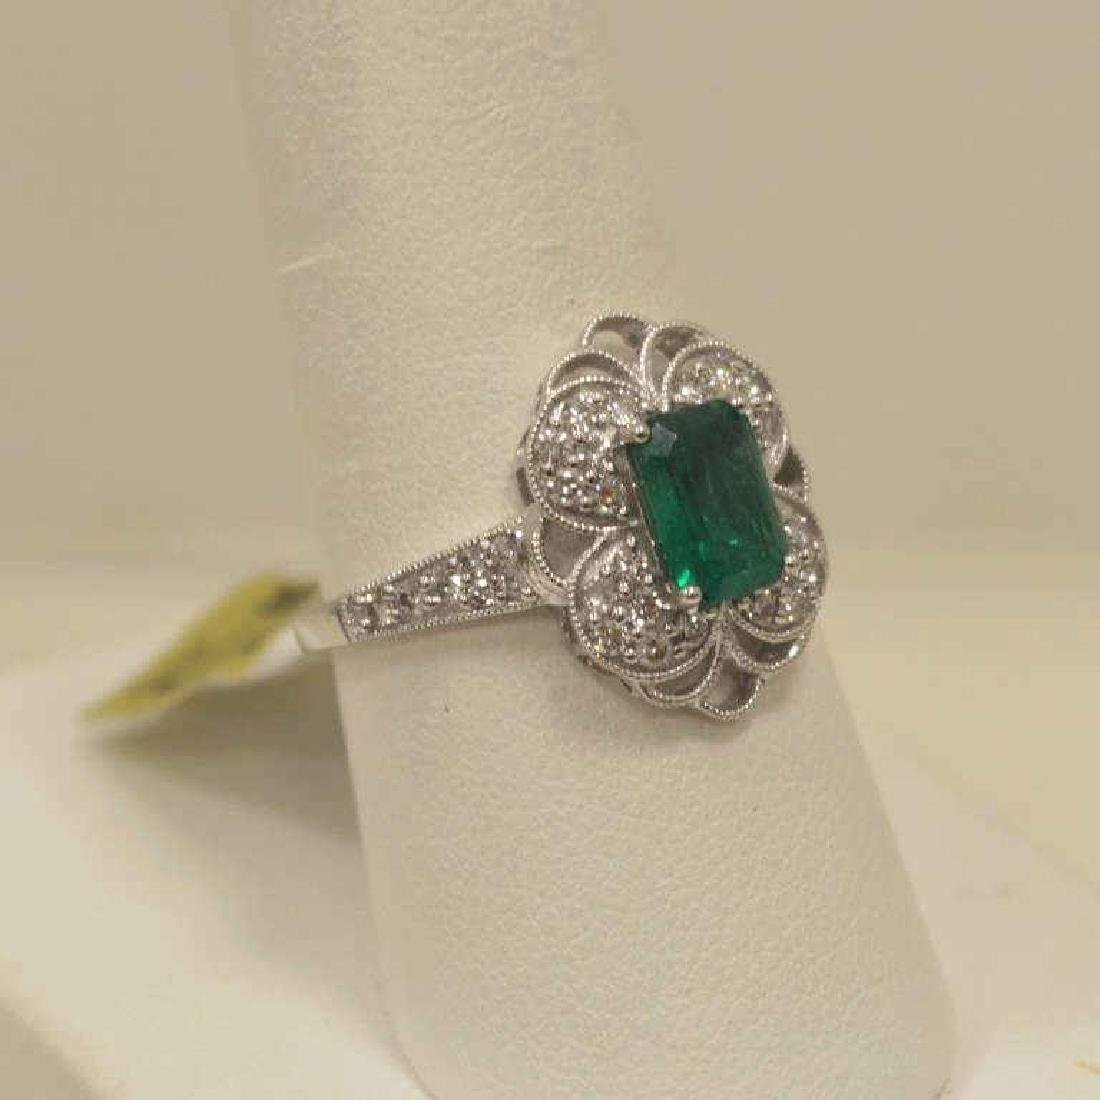 18kt white gold emerald and diamond ring - 2